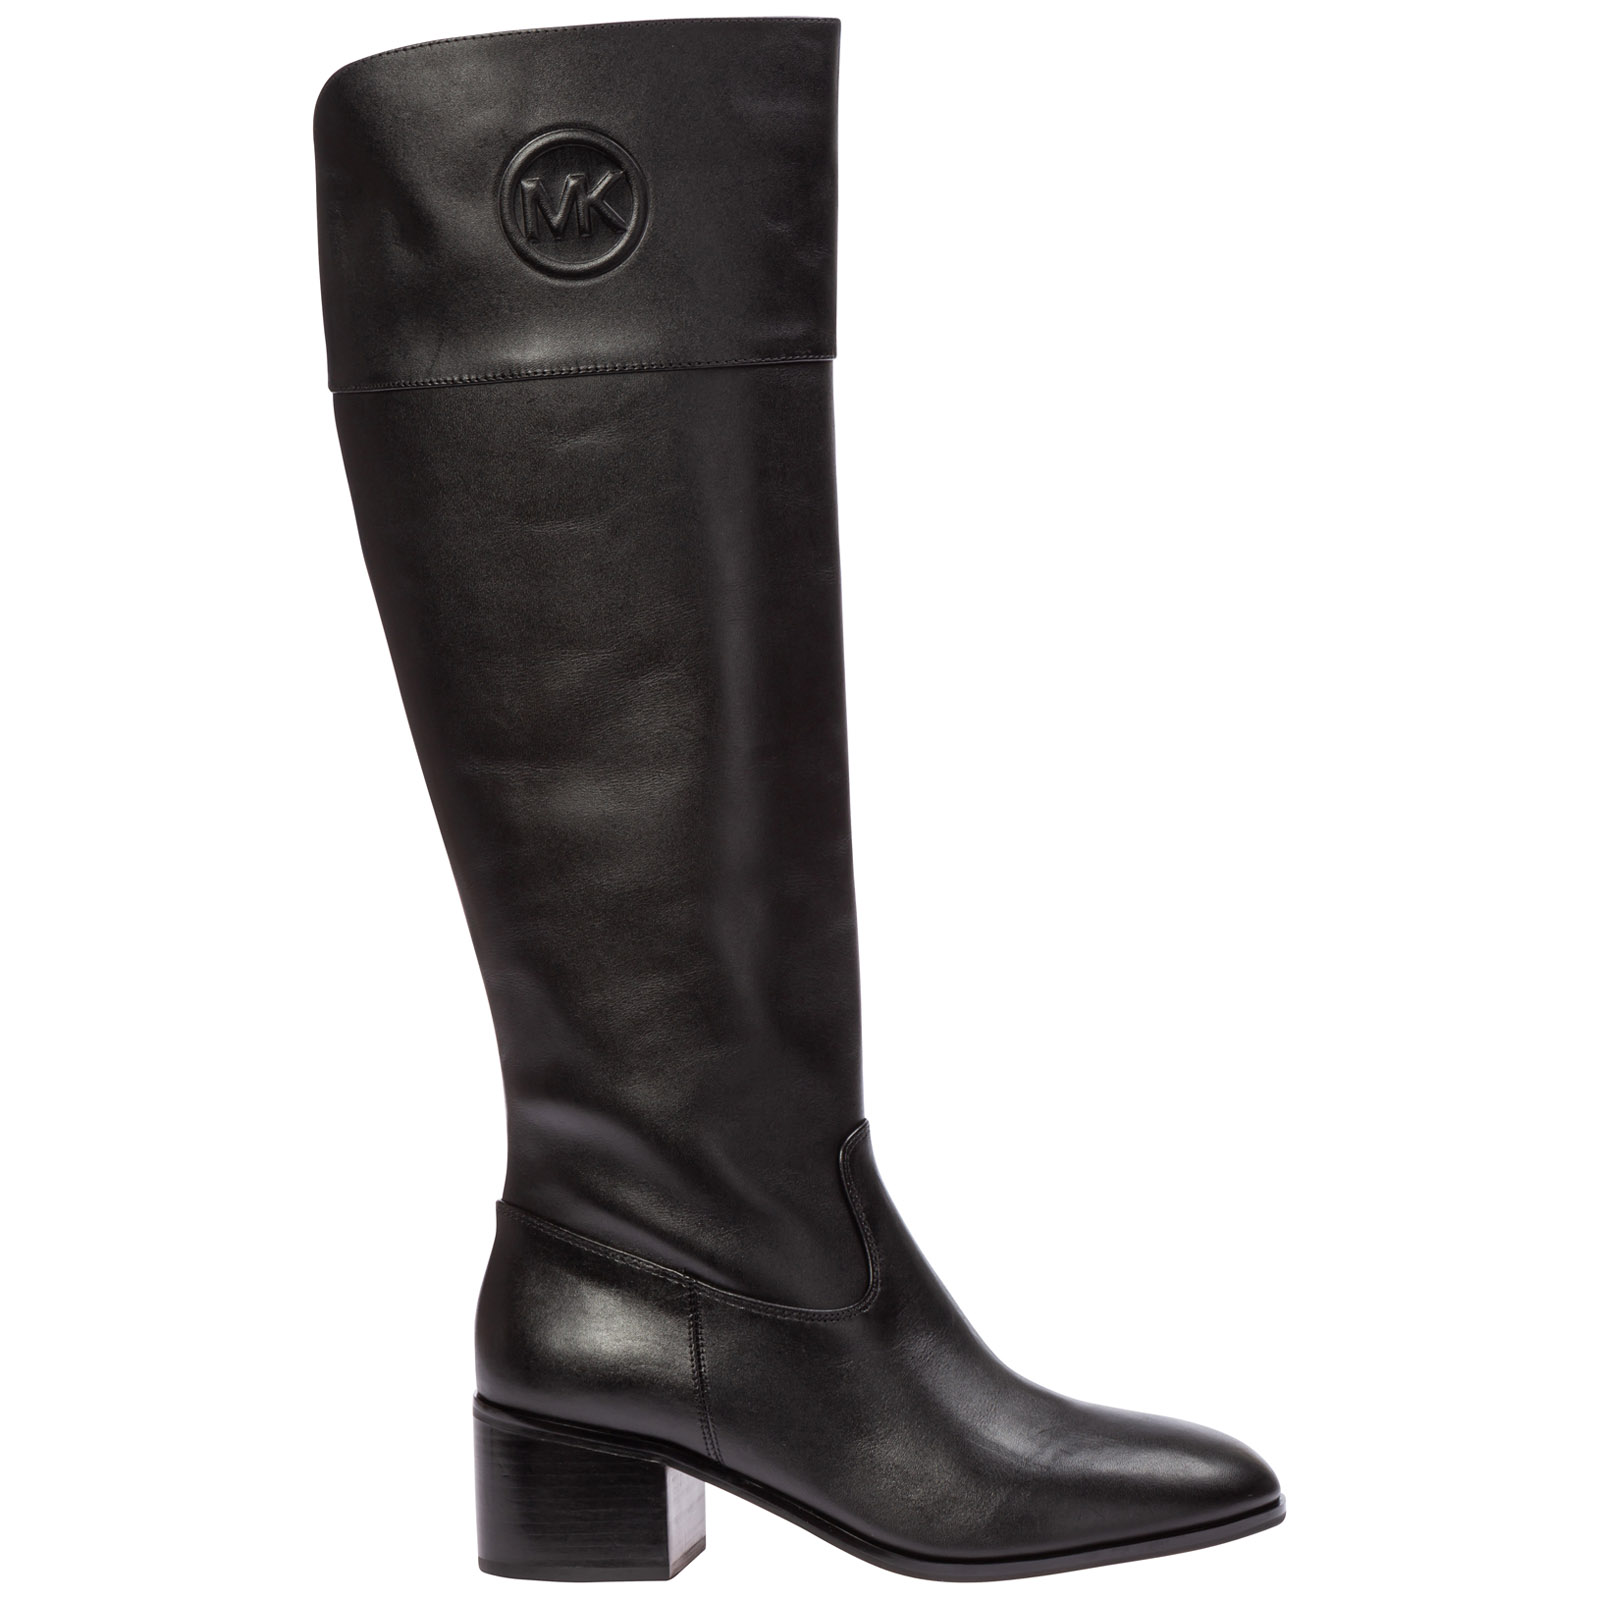 Michael Kors Boots WOMEN'S LEATHER HEEL BOOTS DYLYN